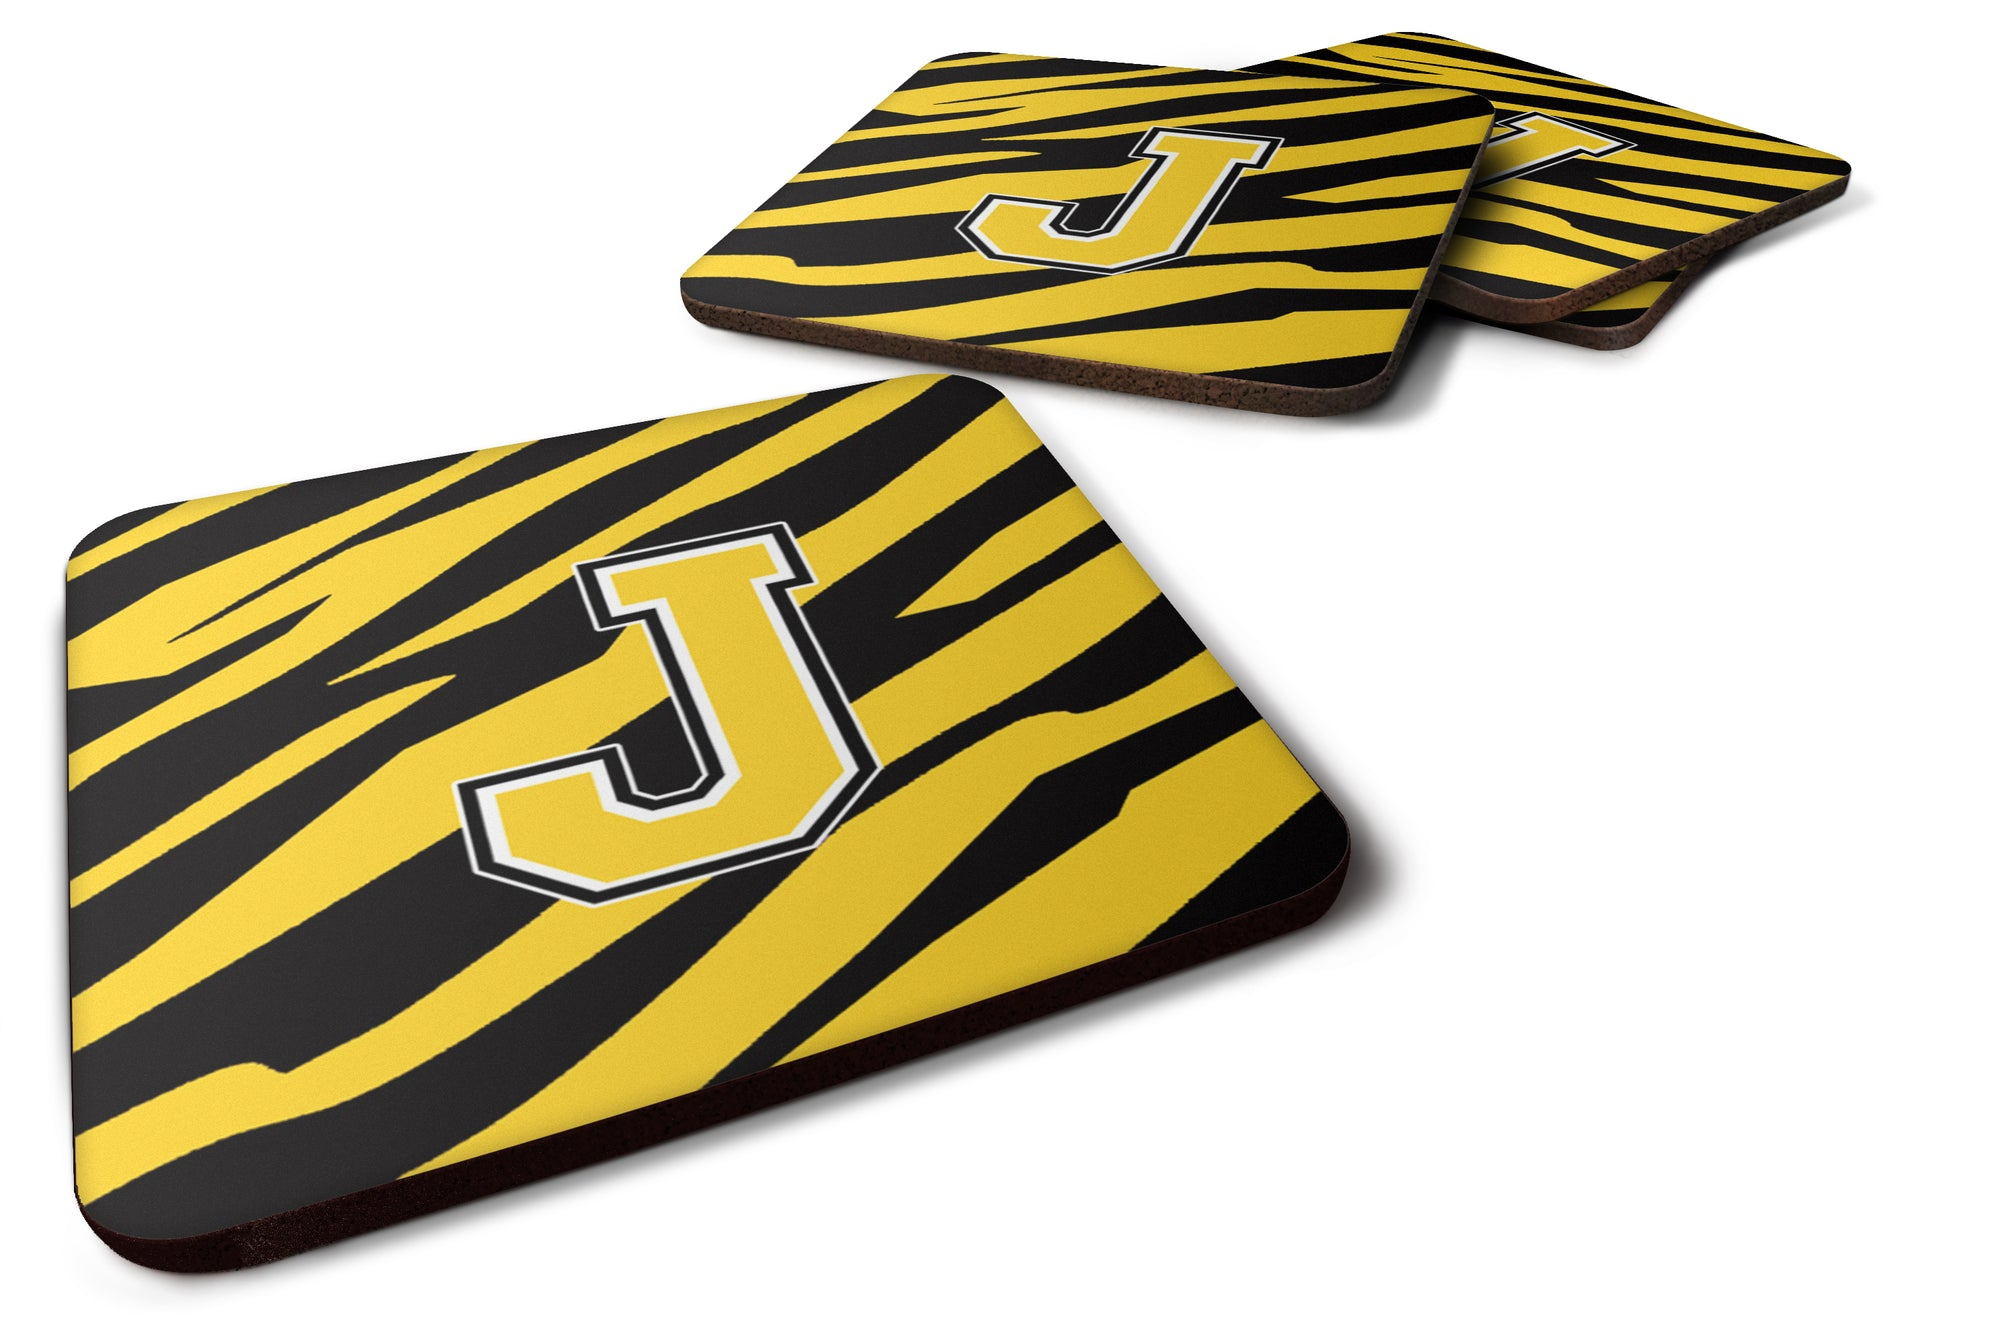 Set of 4 Monogram - Tiger Stripe - Black Gold Foam Coasters Initial Letter J by Caroline's Treasures